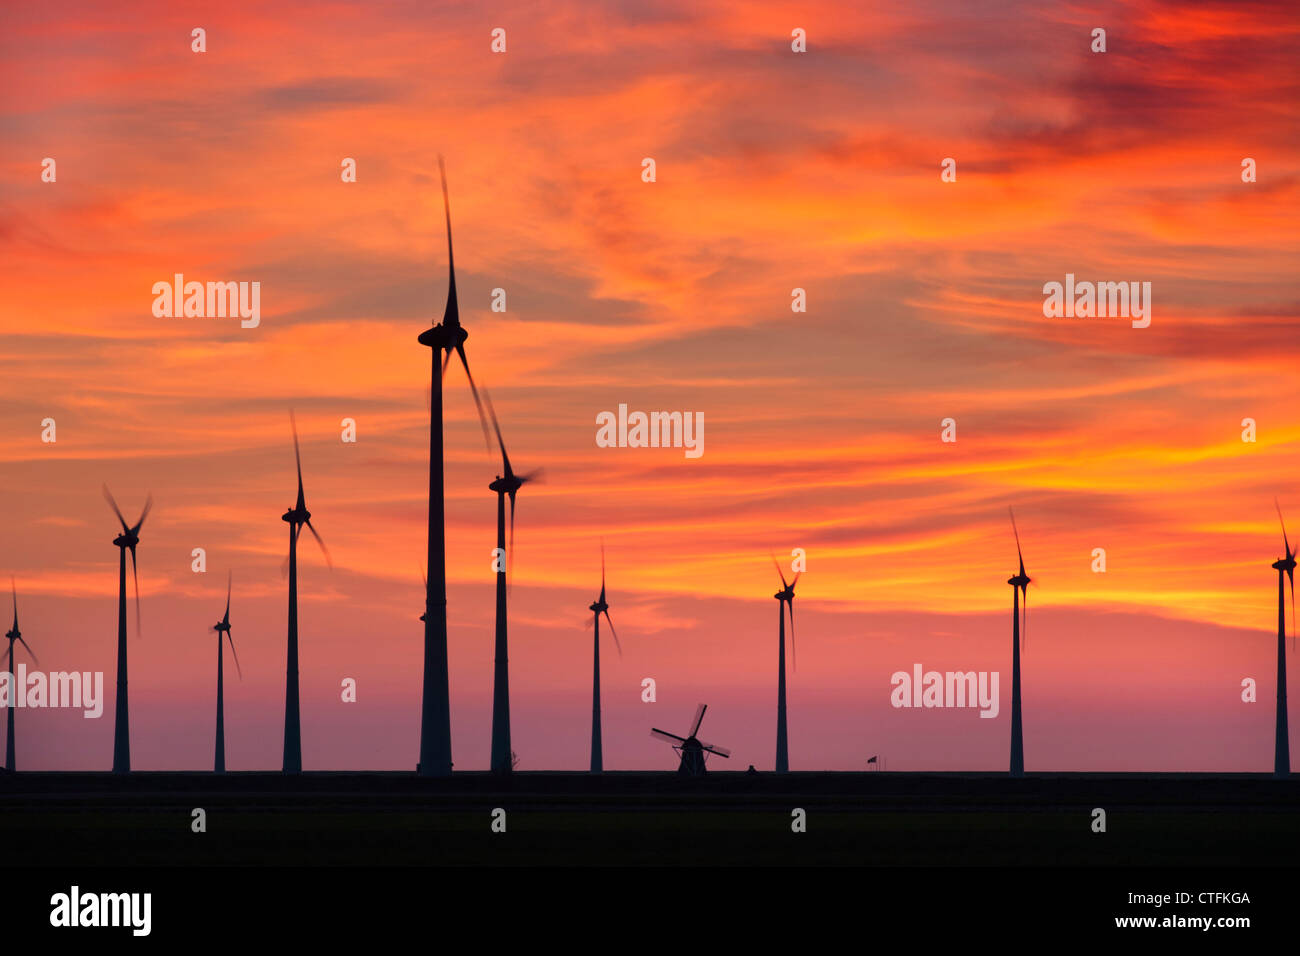 The Netherlands, Eemsmond, Eemshaven, Windturbines and traditional windmill. Sunset. - Stock Image